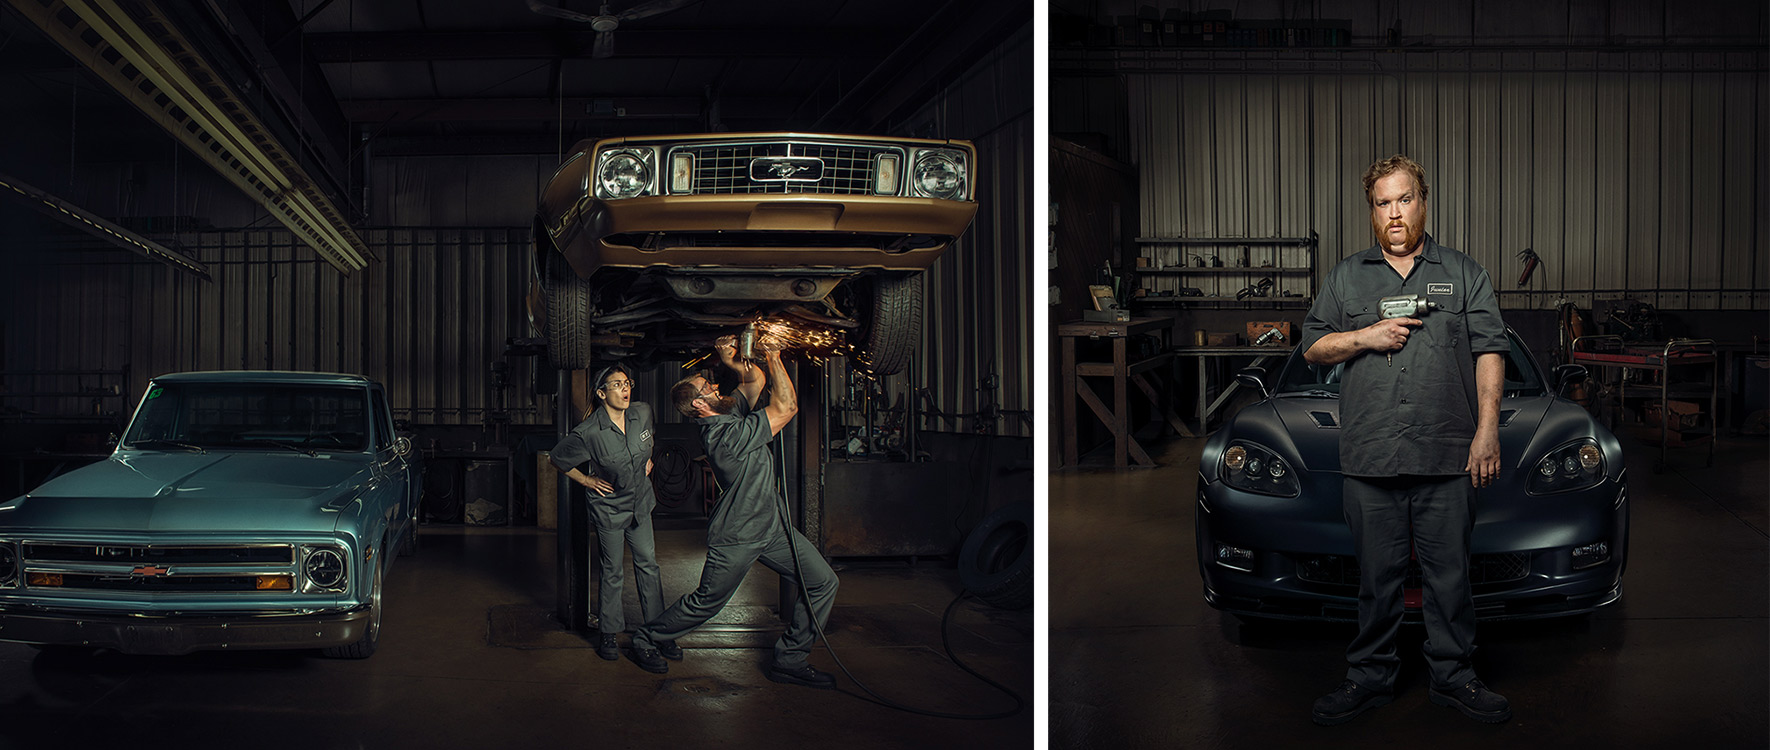 Photography by Freddy Fabris Photo